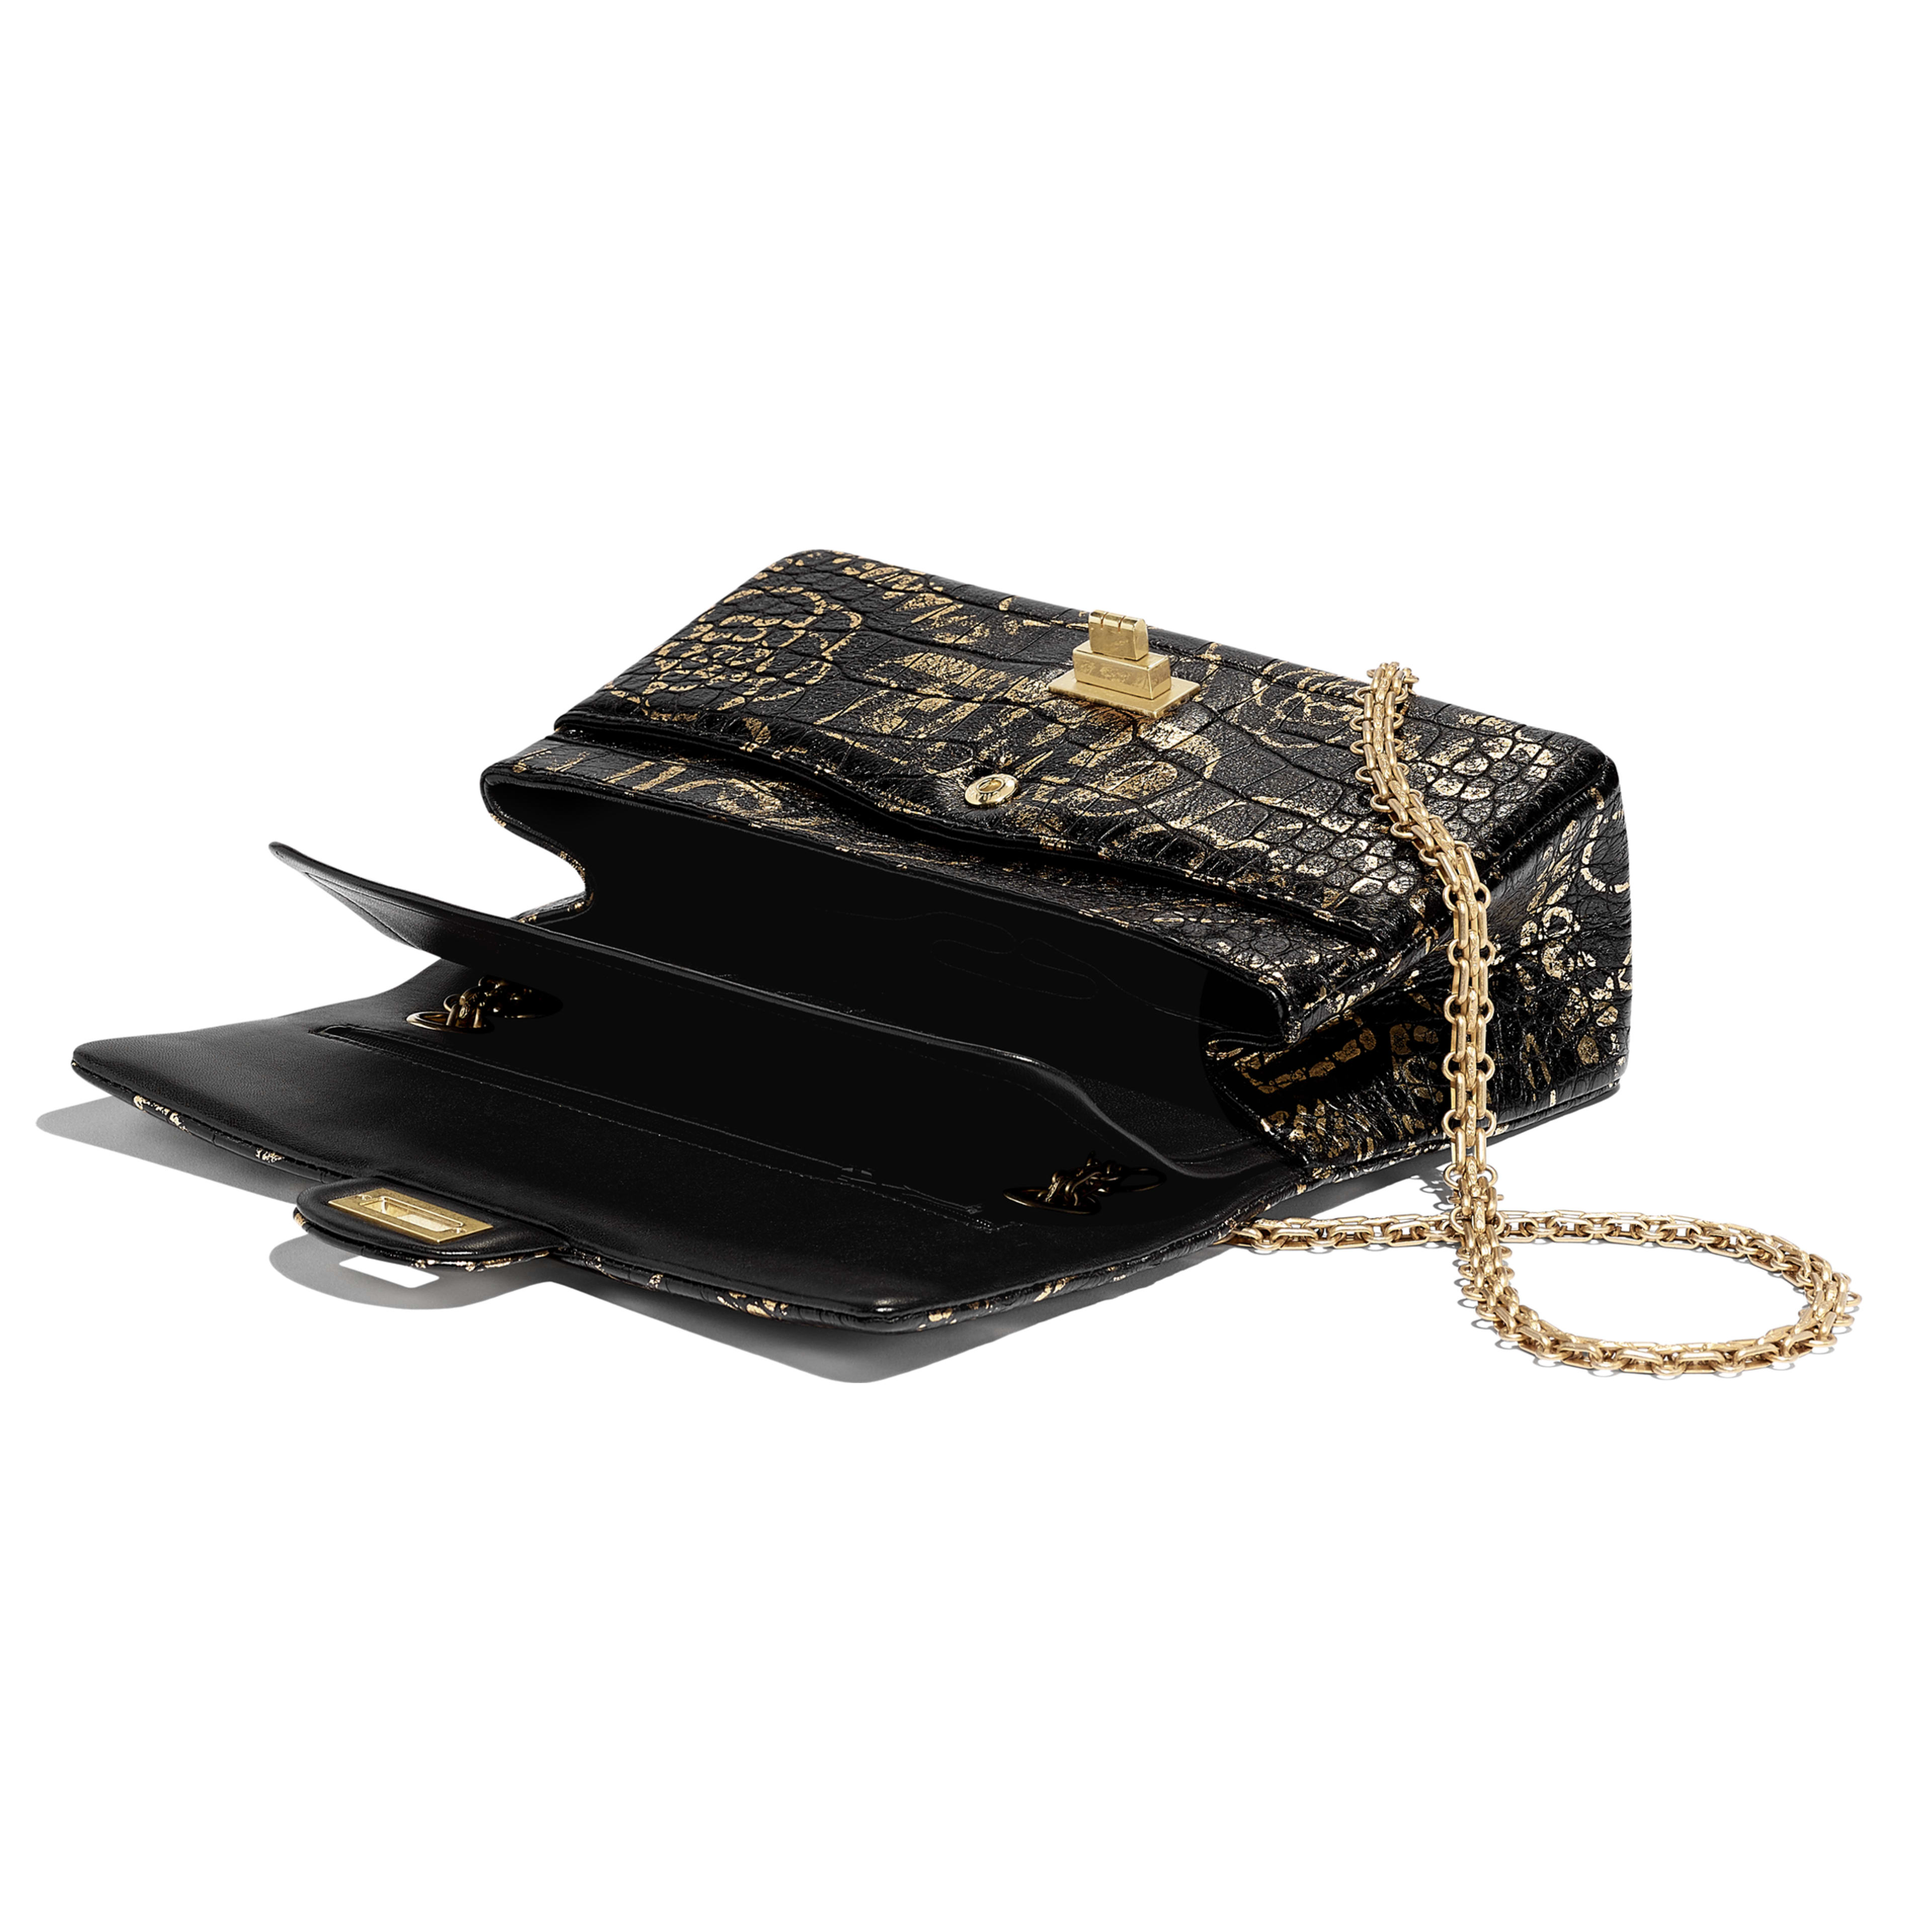 2.55 Handbag - Black & Gold - Crocodile Embossed Printed Leather & Gold-Tone Metal - Other view - see full sized version